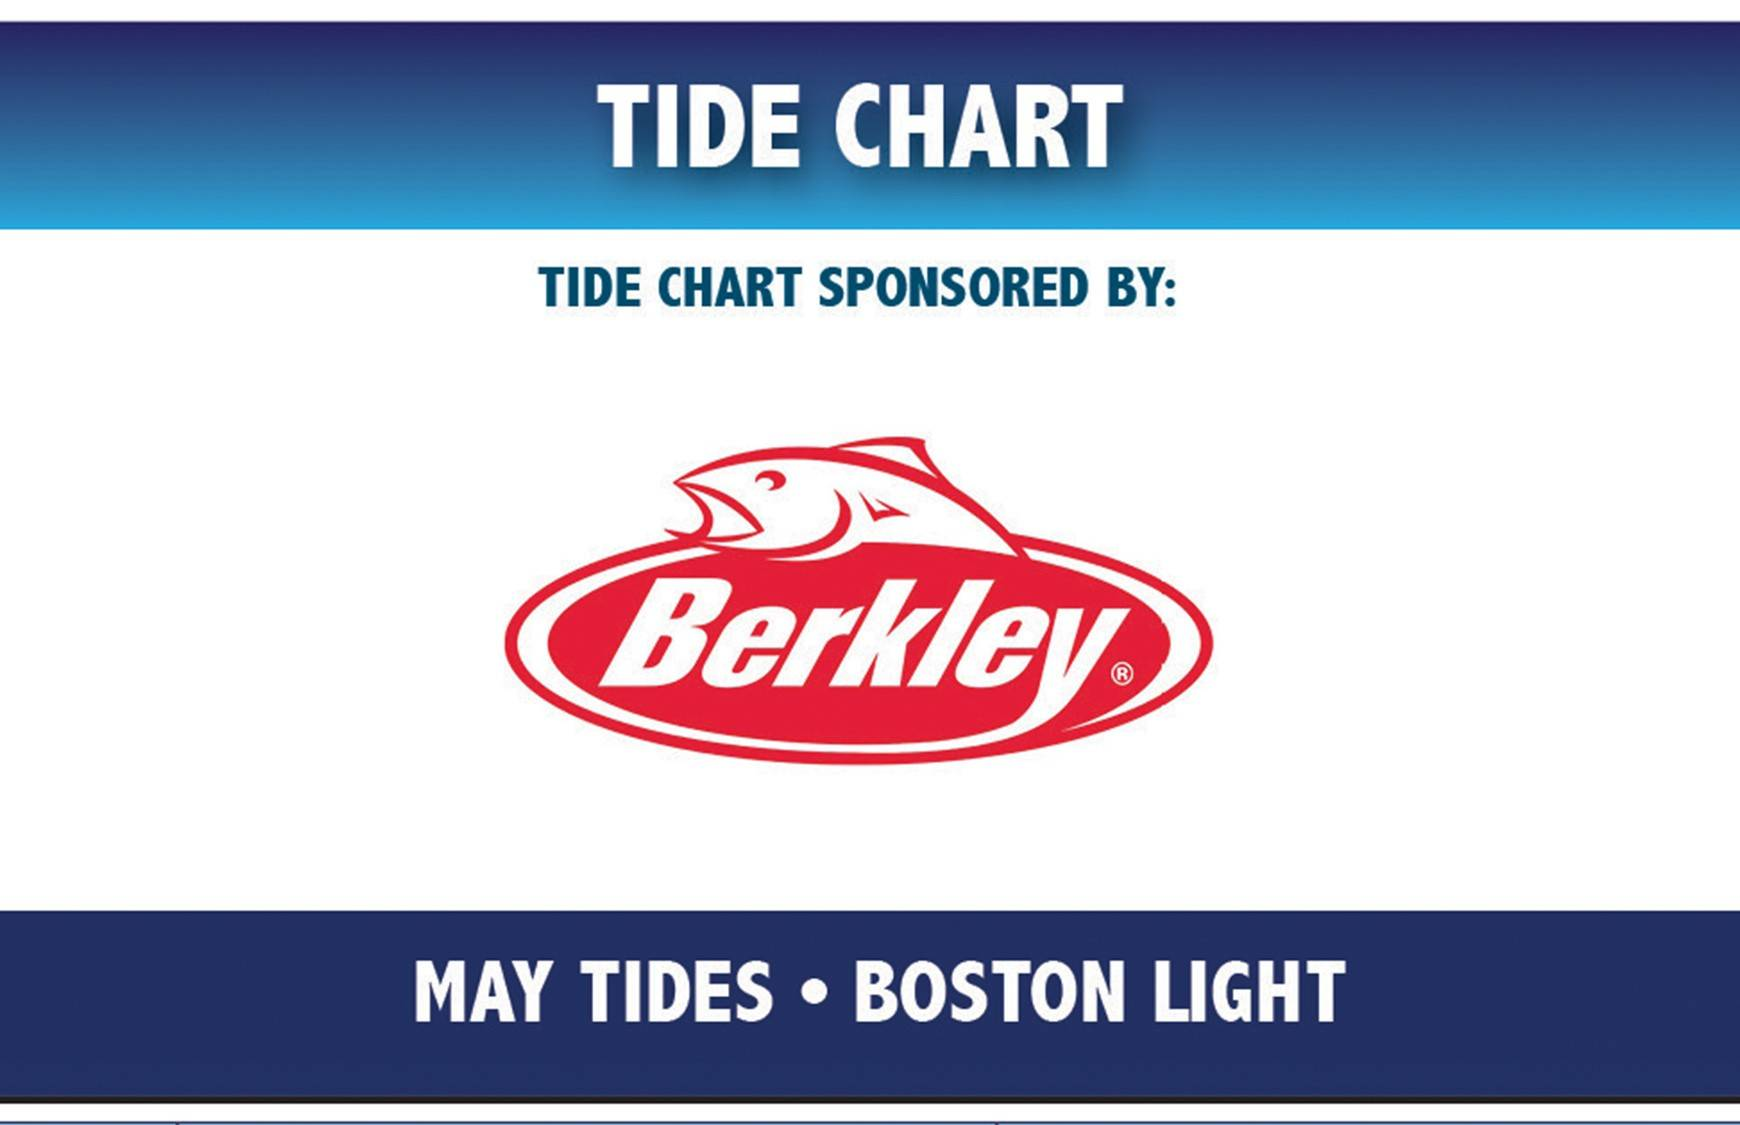 Boston tide chart archives coastal angler the angler magazine nvjuhfo Choice Image